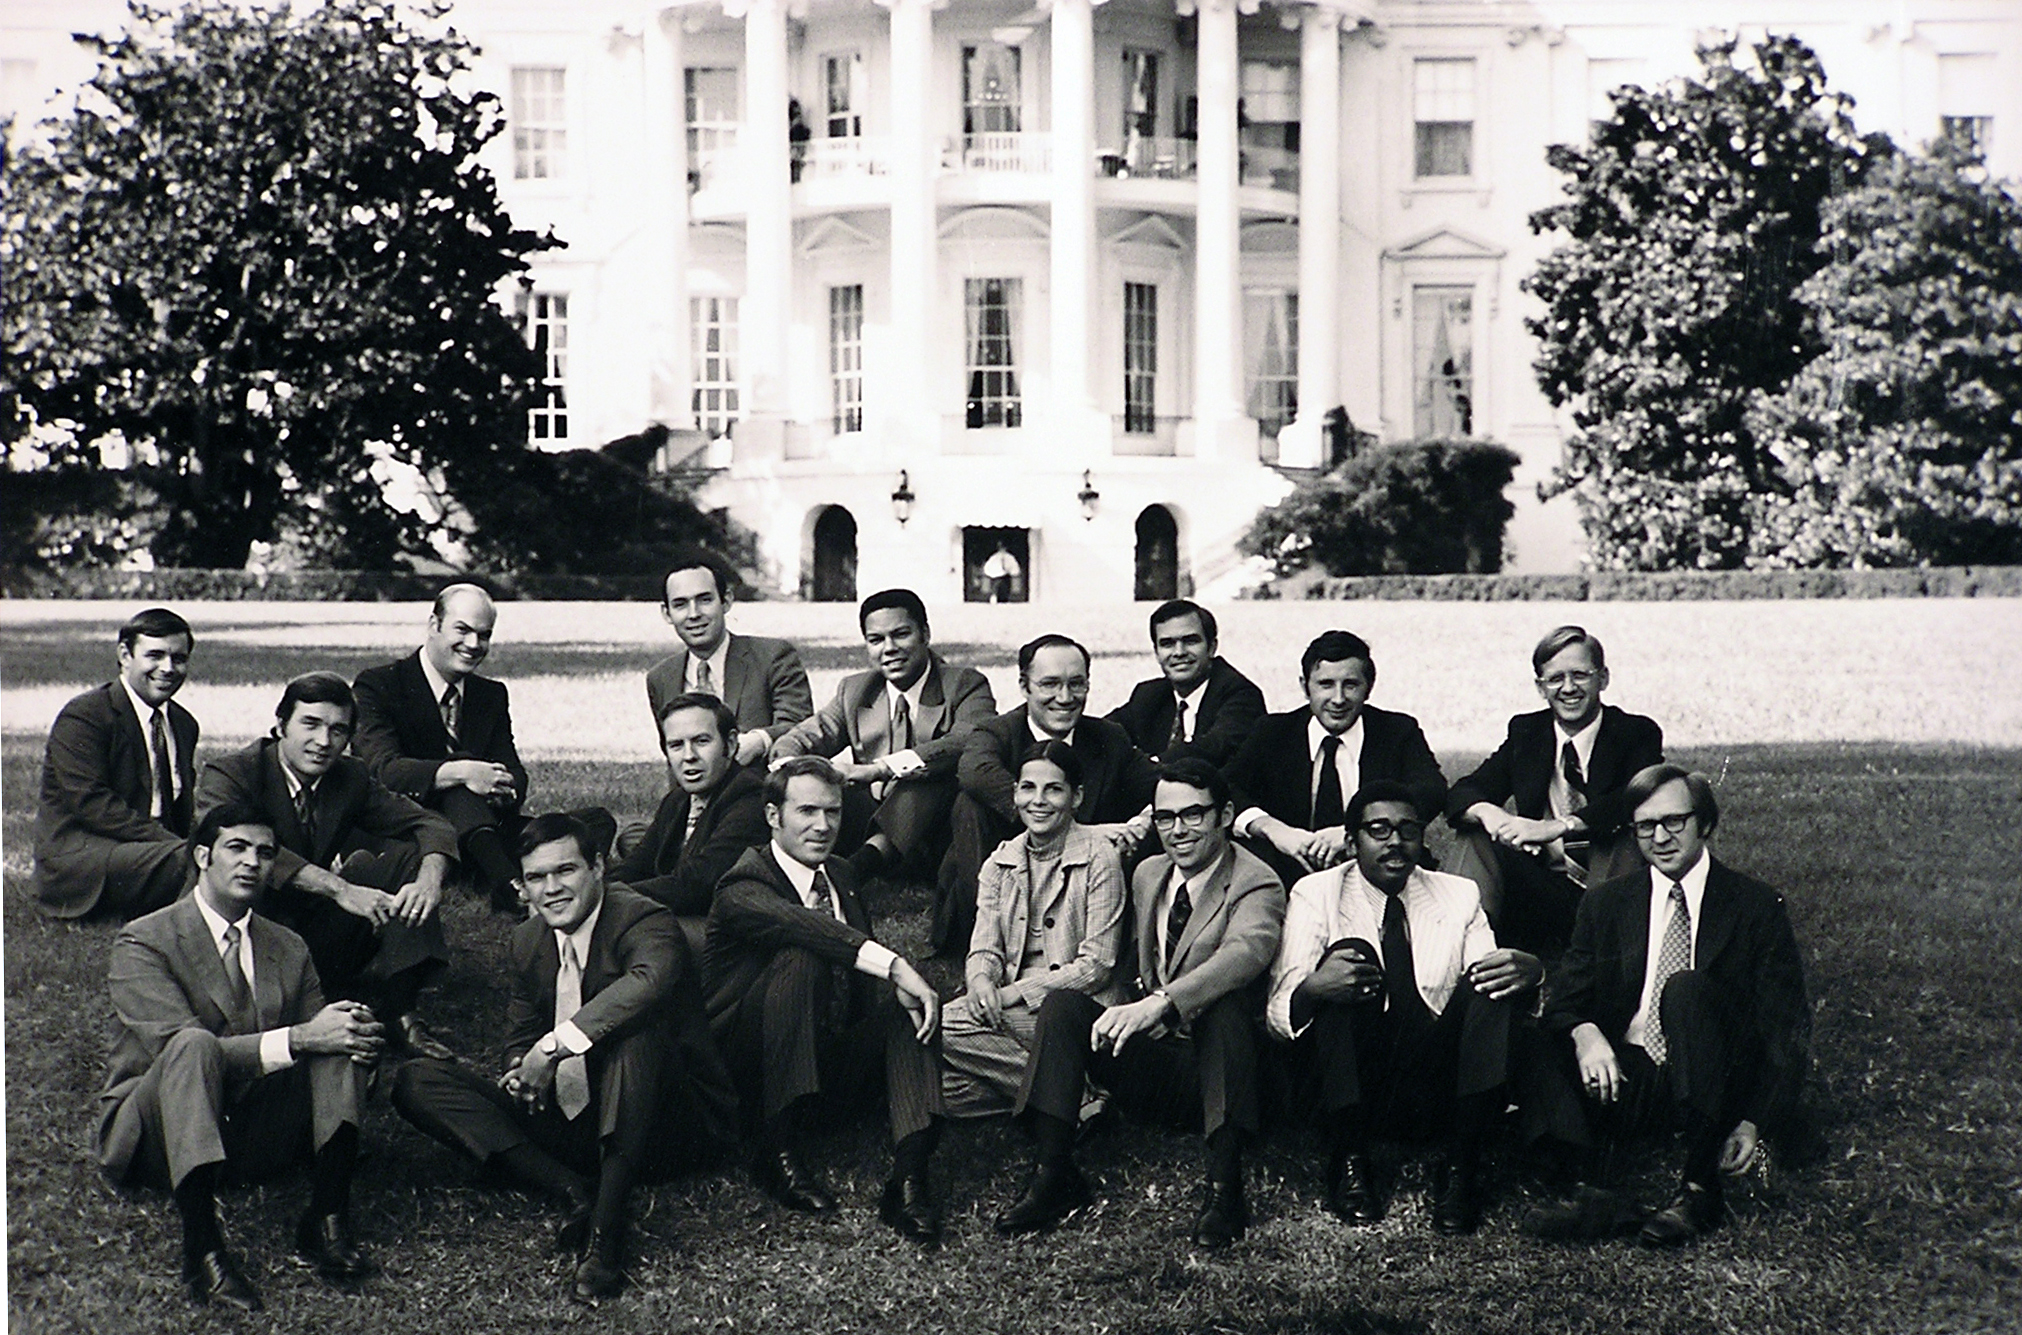 Celebrating 50 Years Of The White House Fellows Program